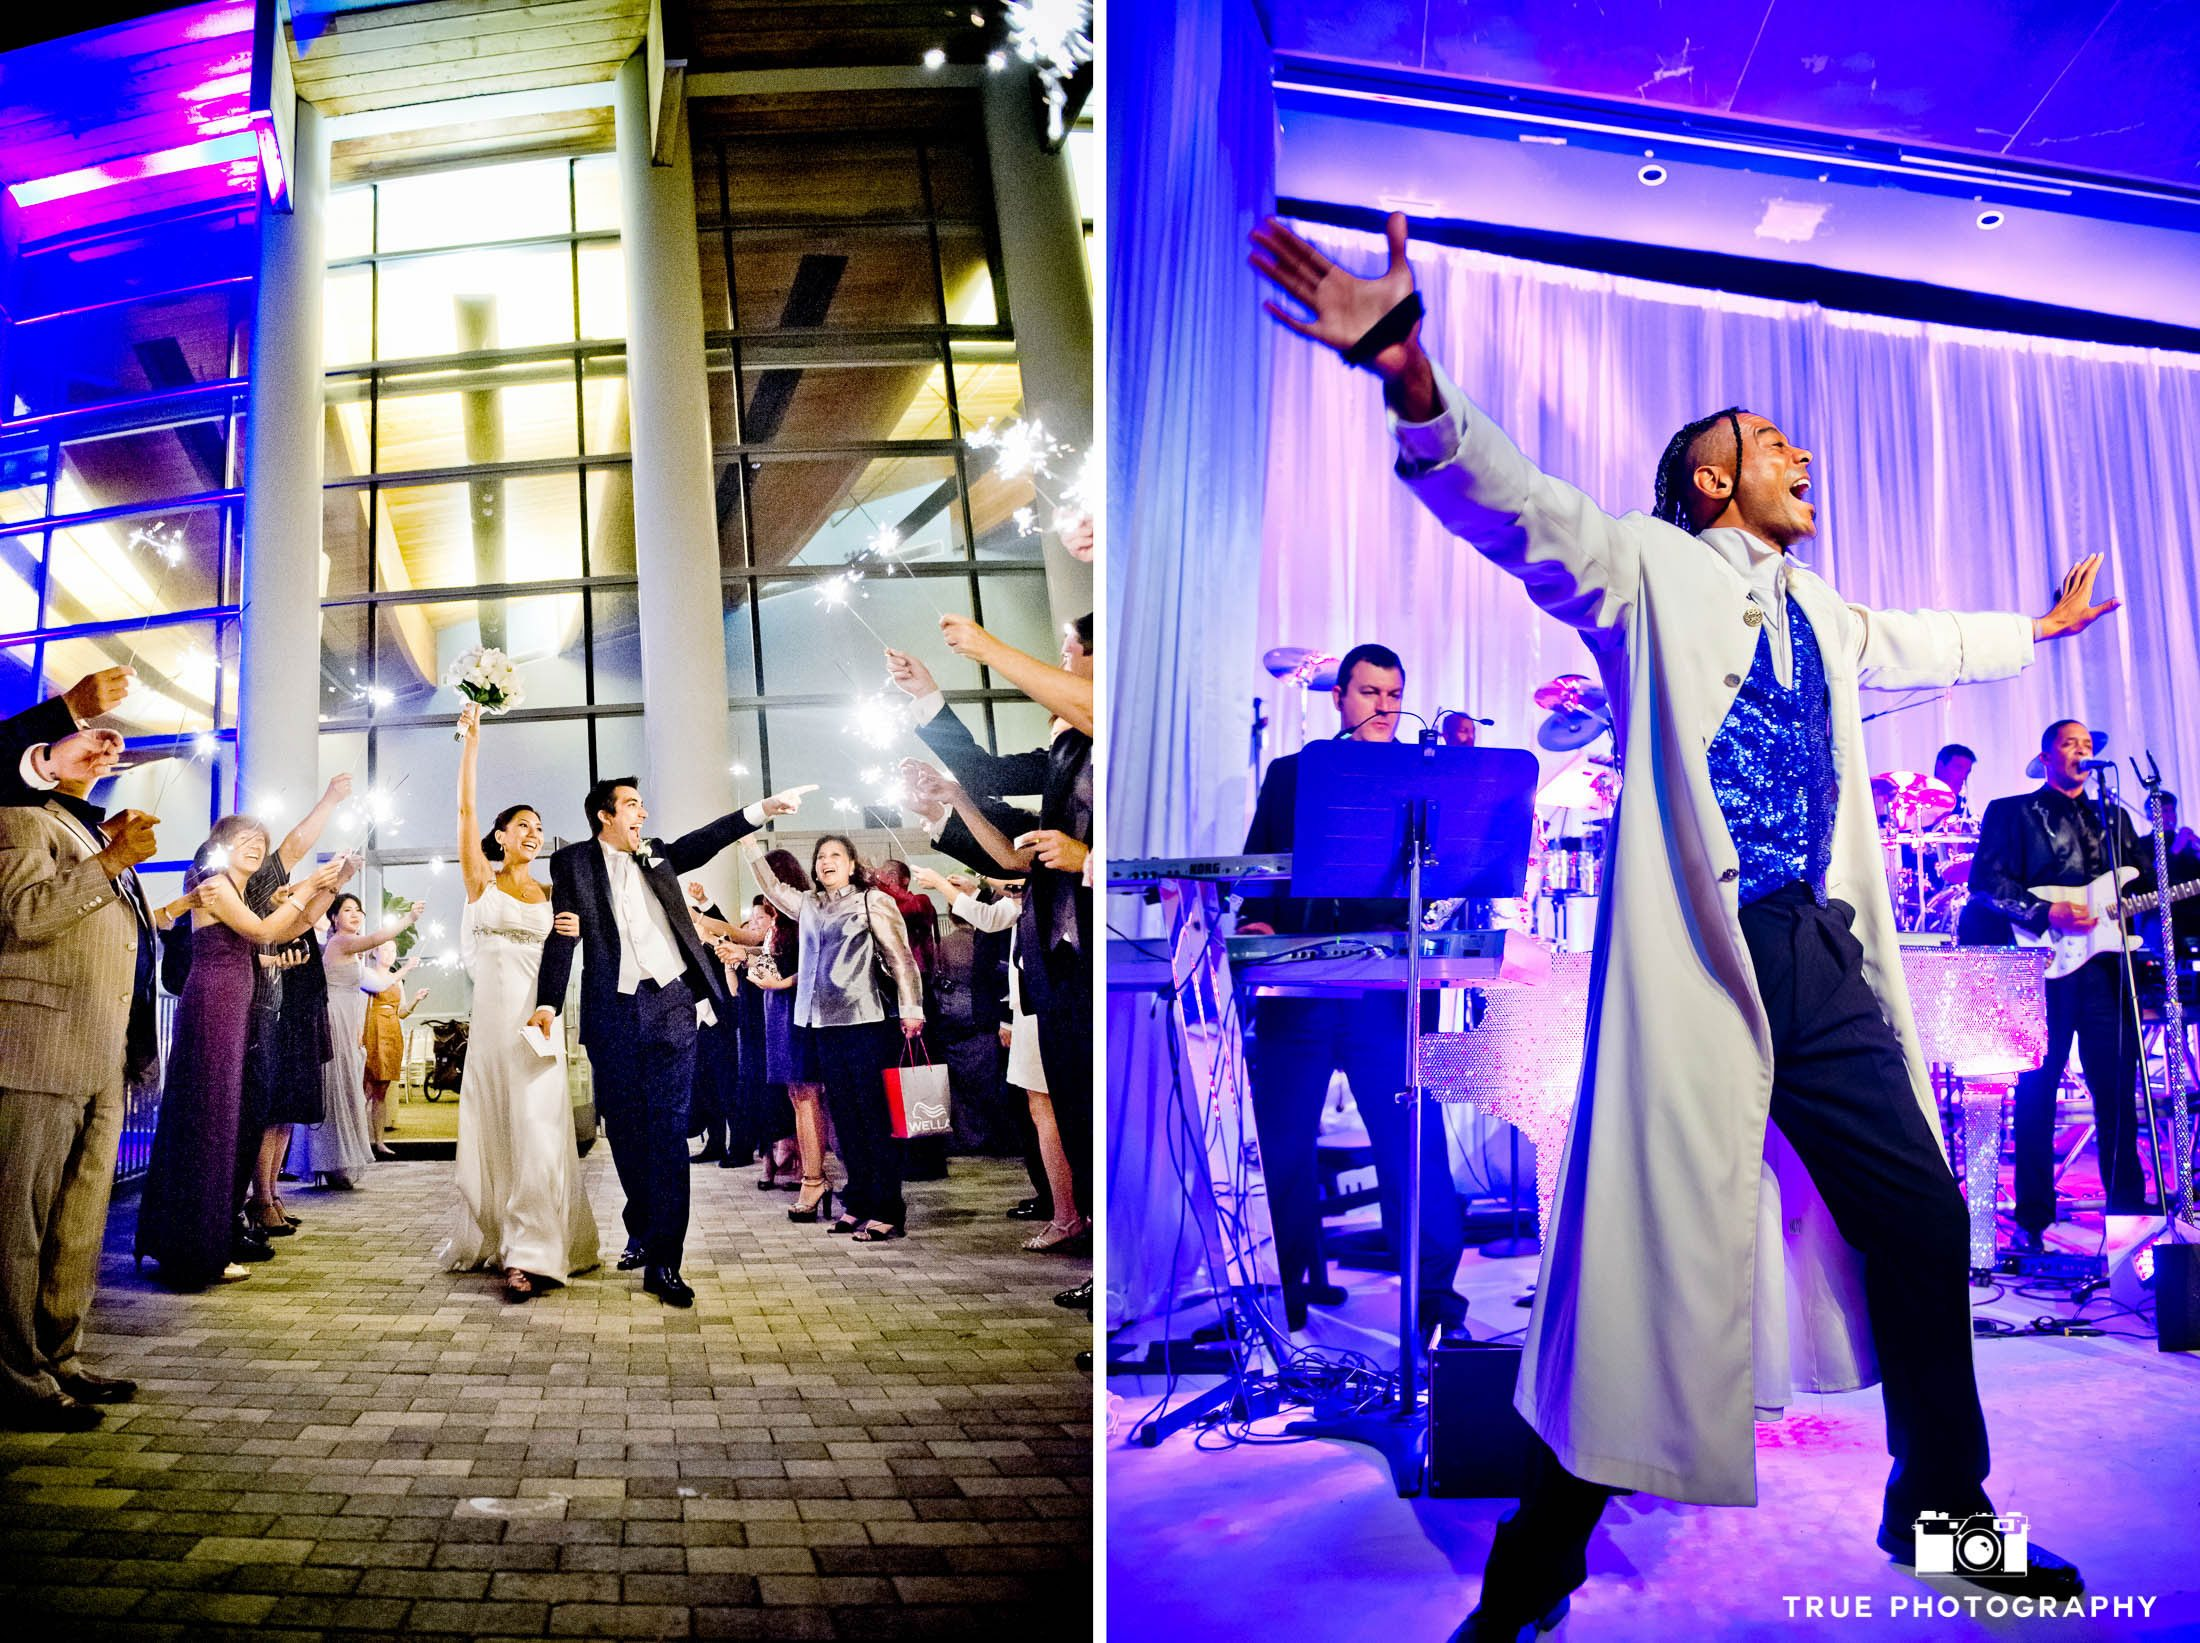 Guests are entertained during wedding reception with grand exit and live performances